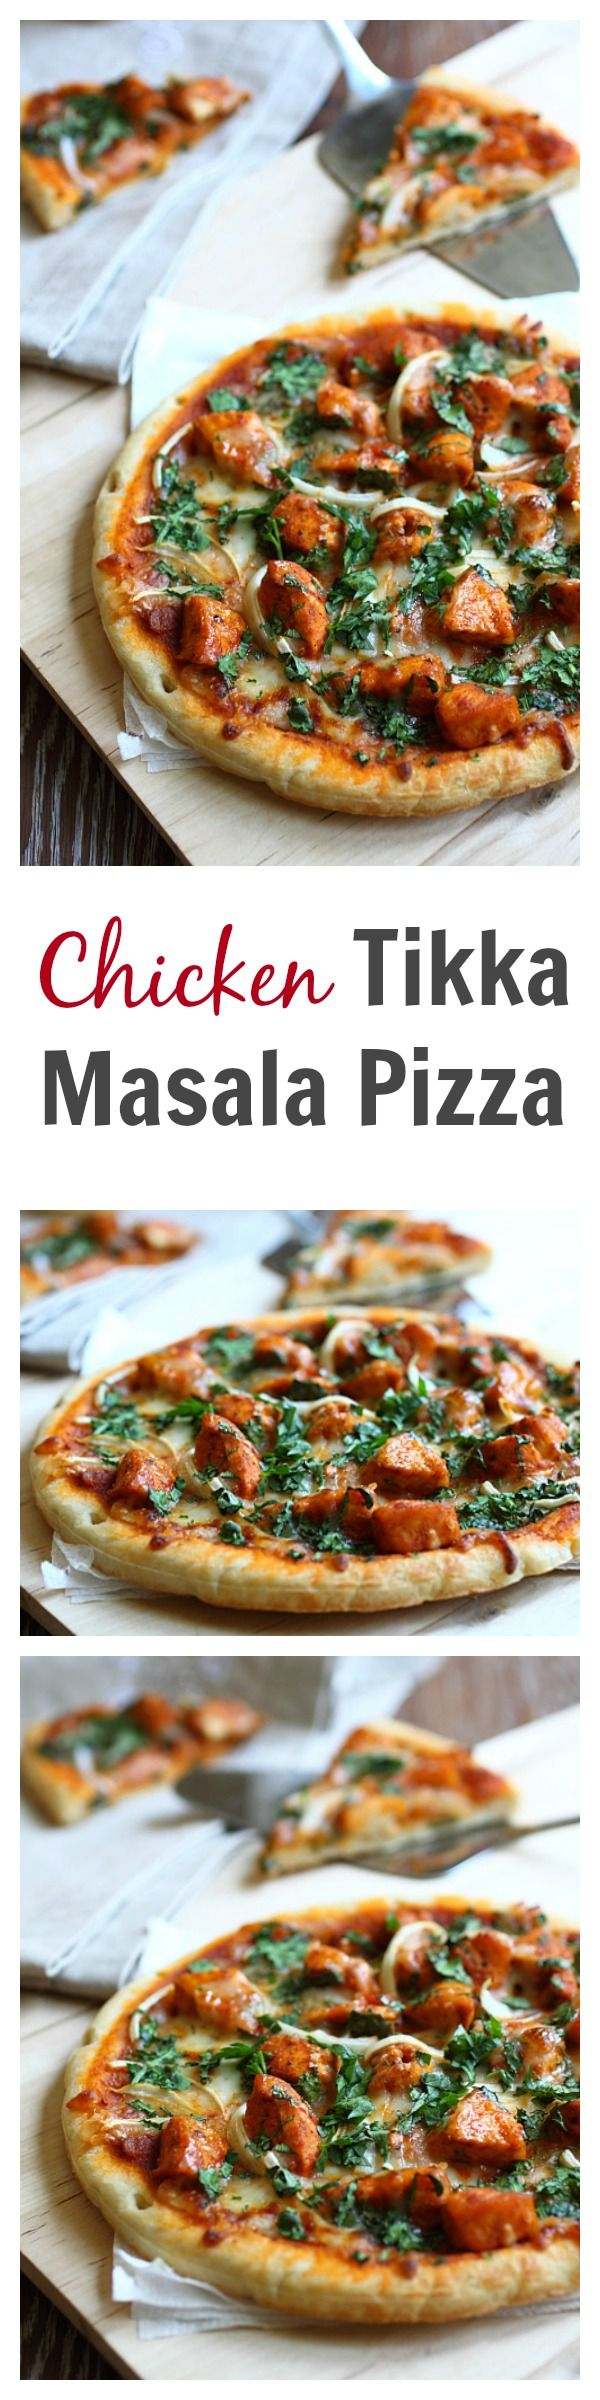 Chicken tikka masala pizza recipe. This pizza is SO good with spicy ...